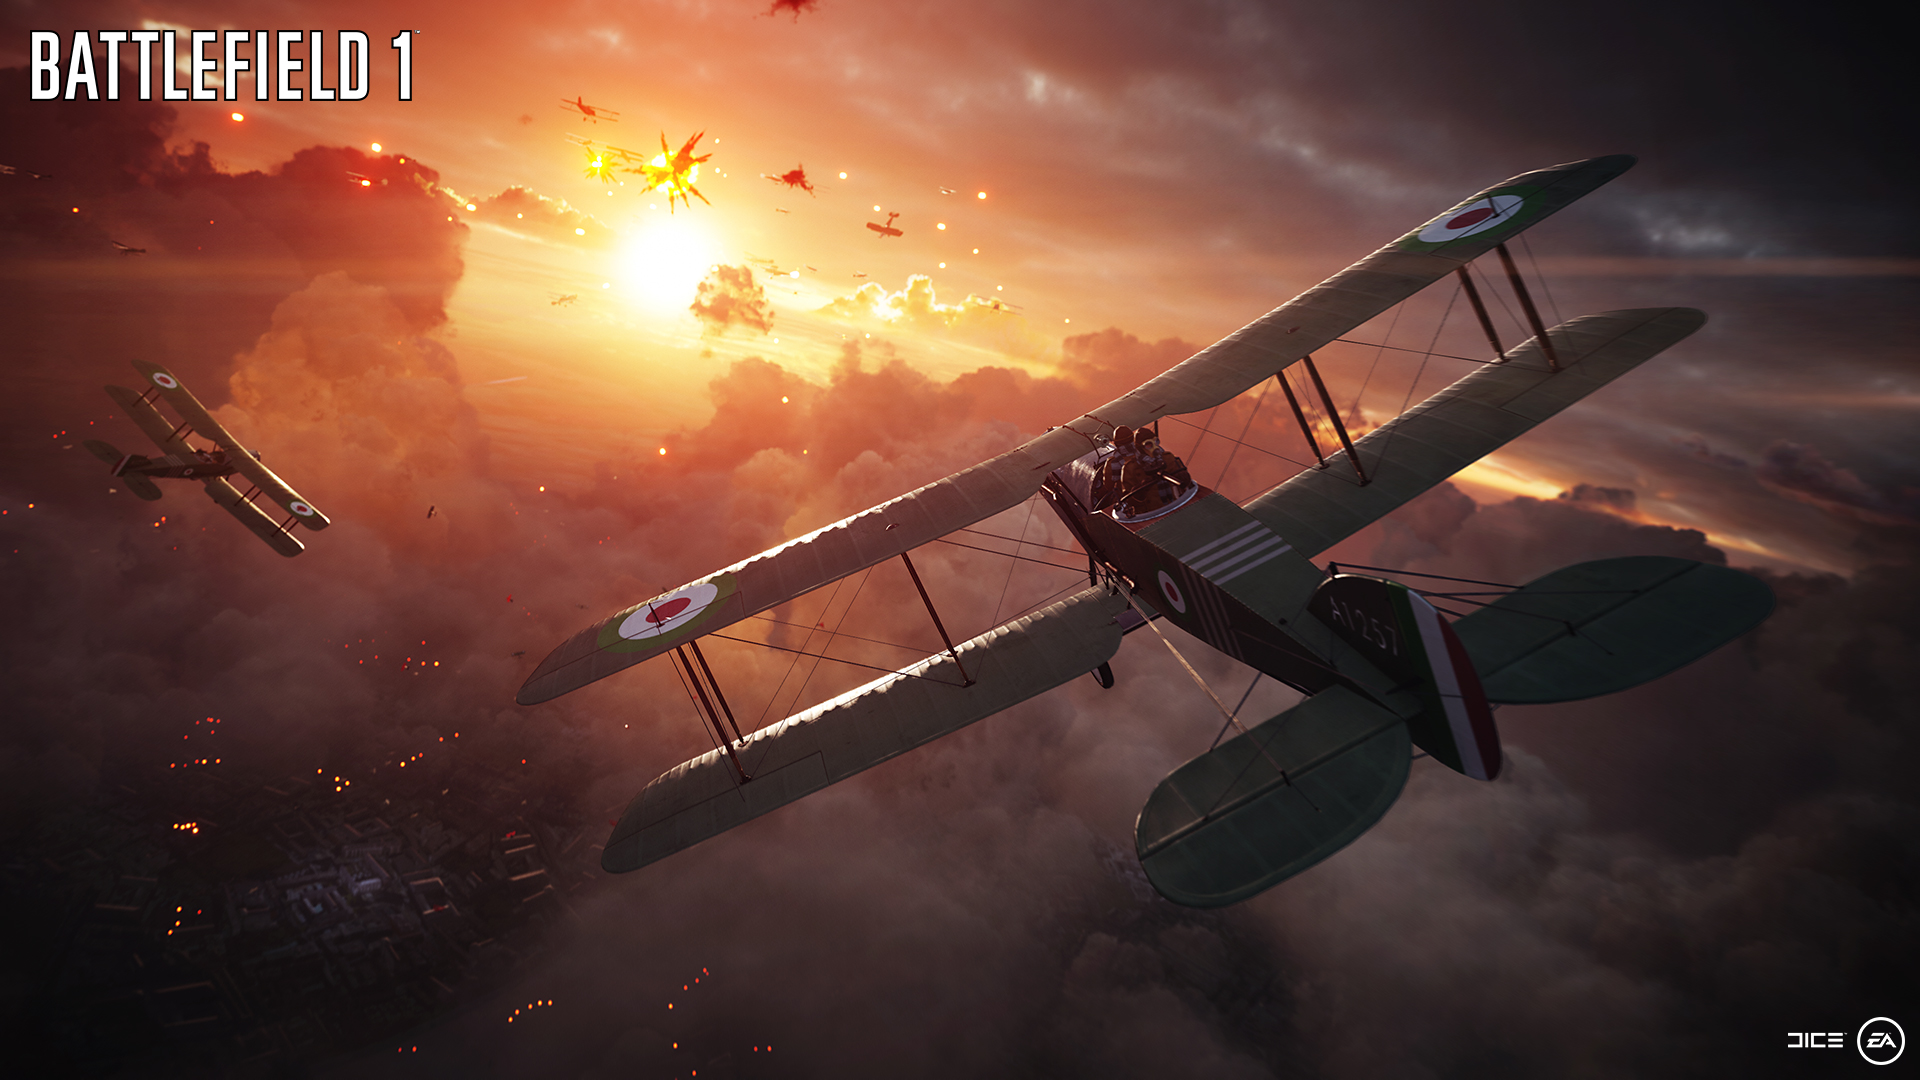 battlefield 1 wallpapers pictures - photo #15